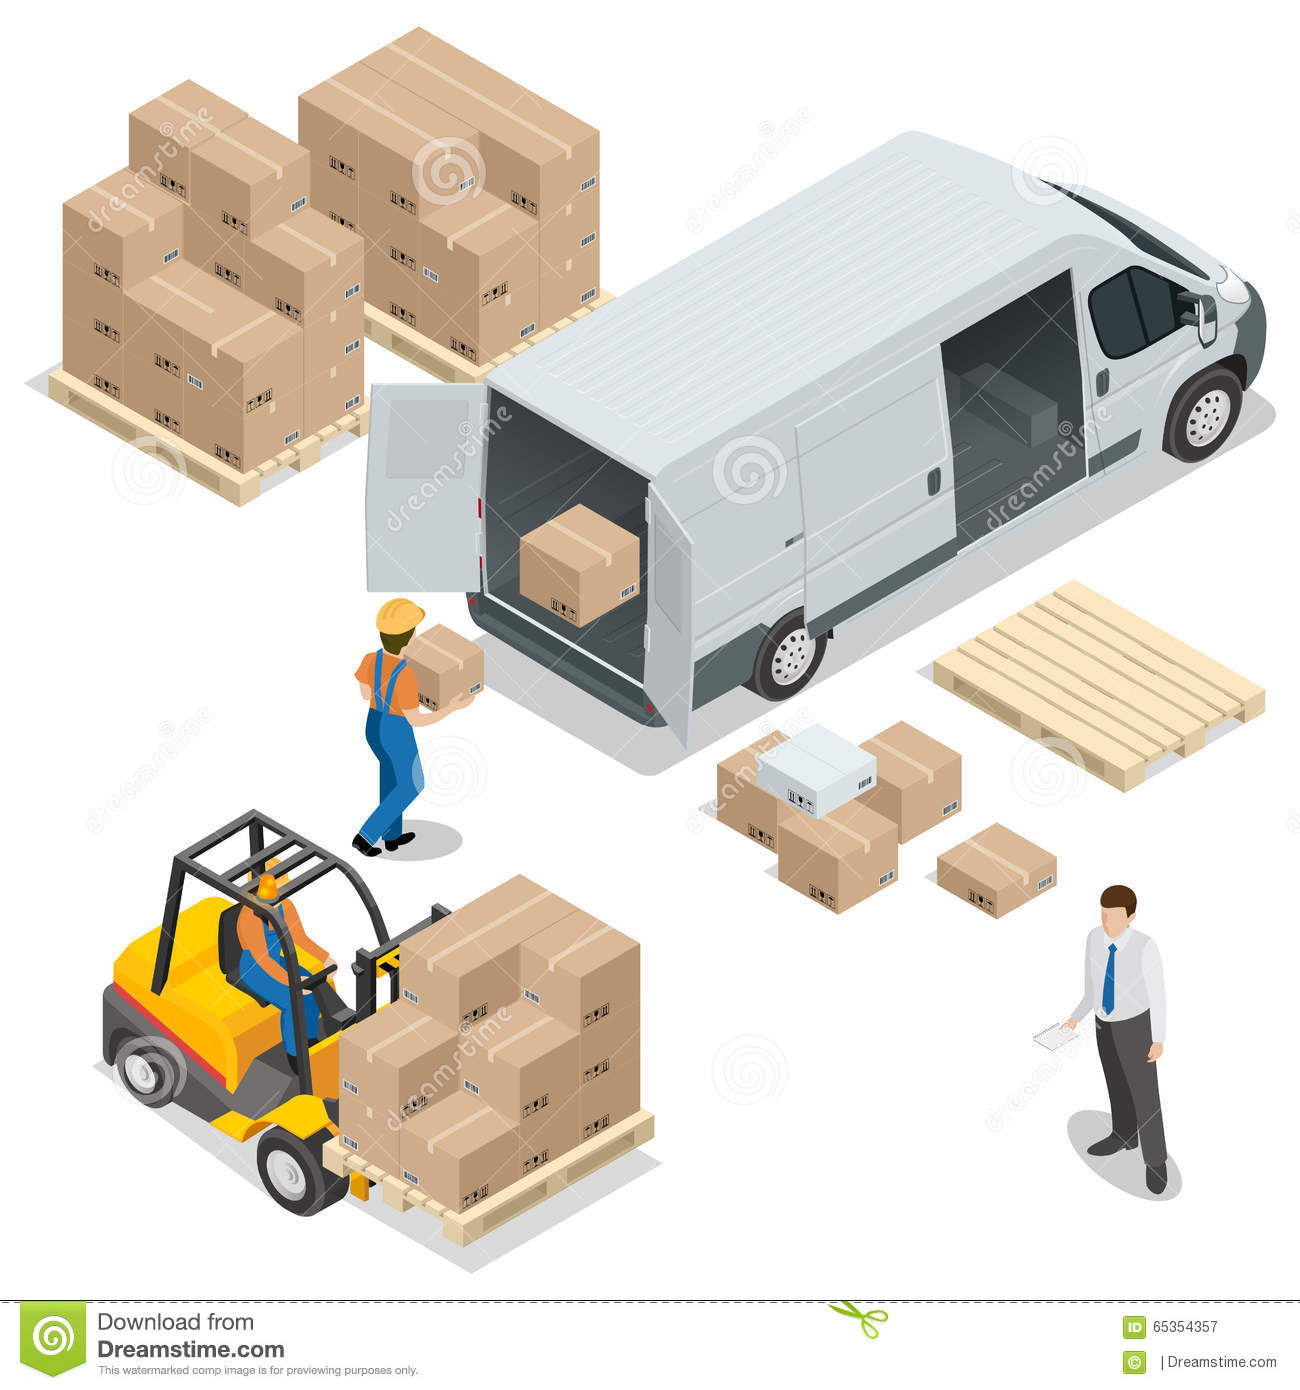 Warehouse. Loading and unloading from warehouse